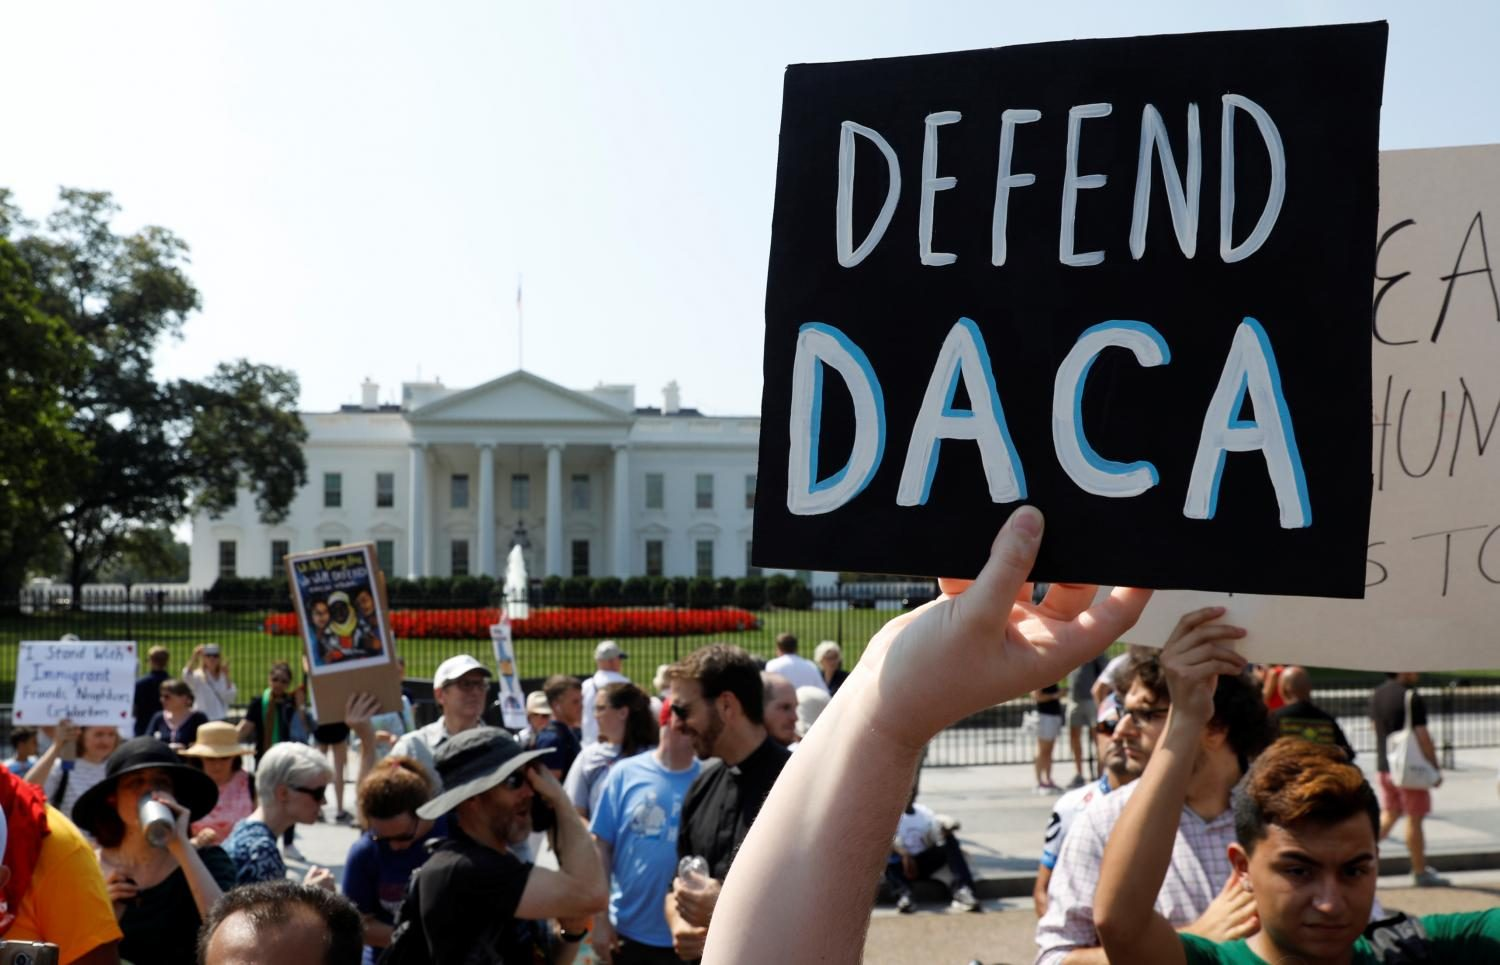 Chime in: DACA decision